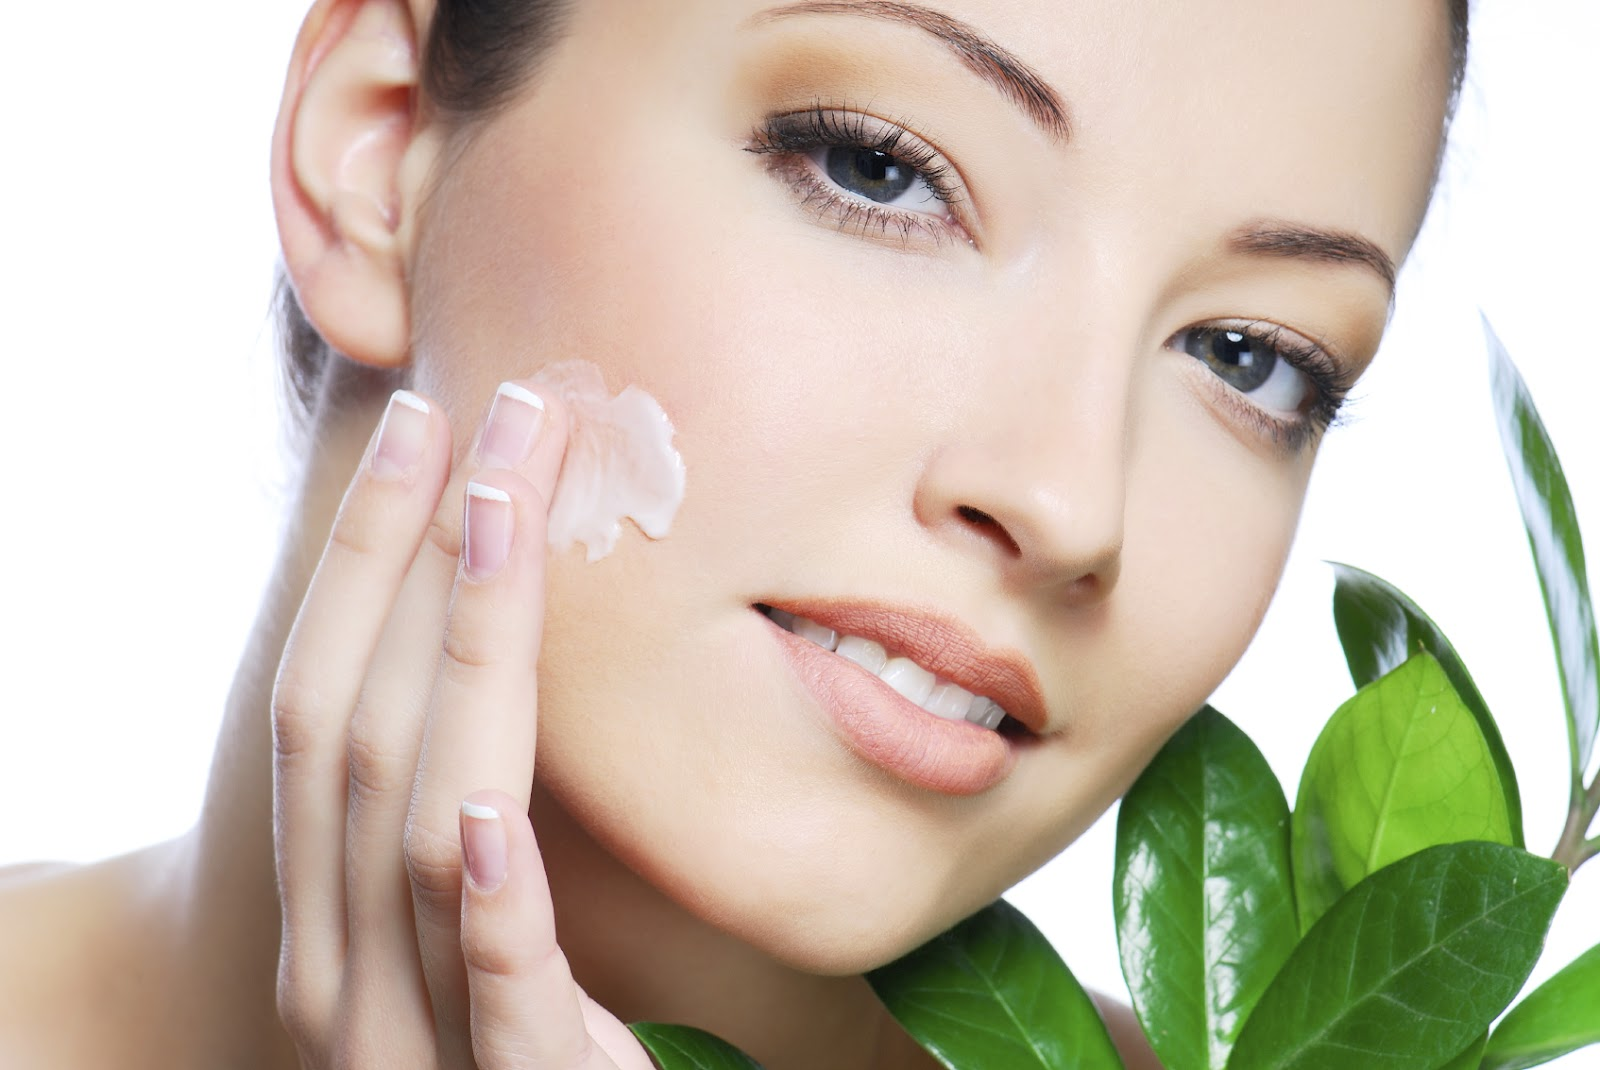 Organic-Skin-Care-Products3.jpg